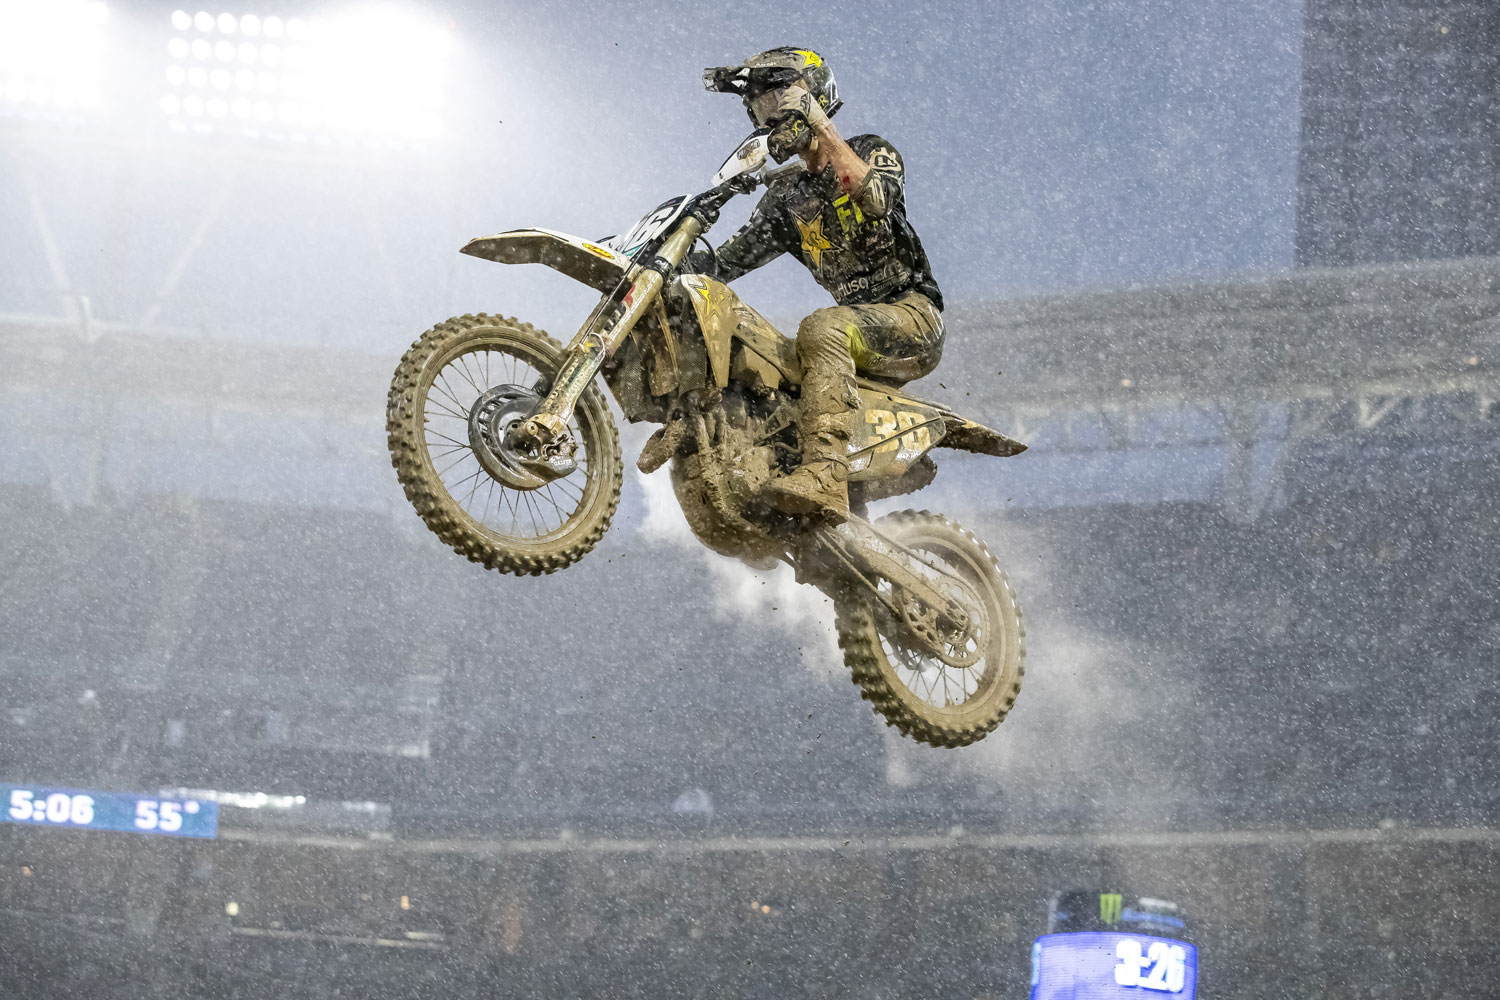 Mosiman navigated his way through the muck Saturday for 14th overall